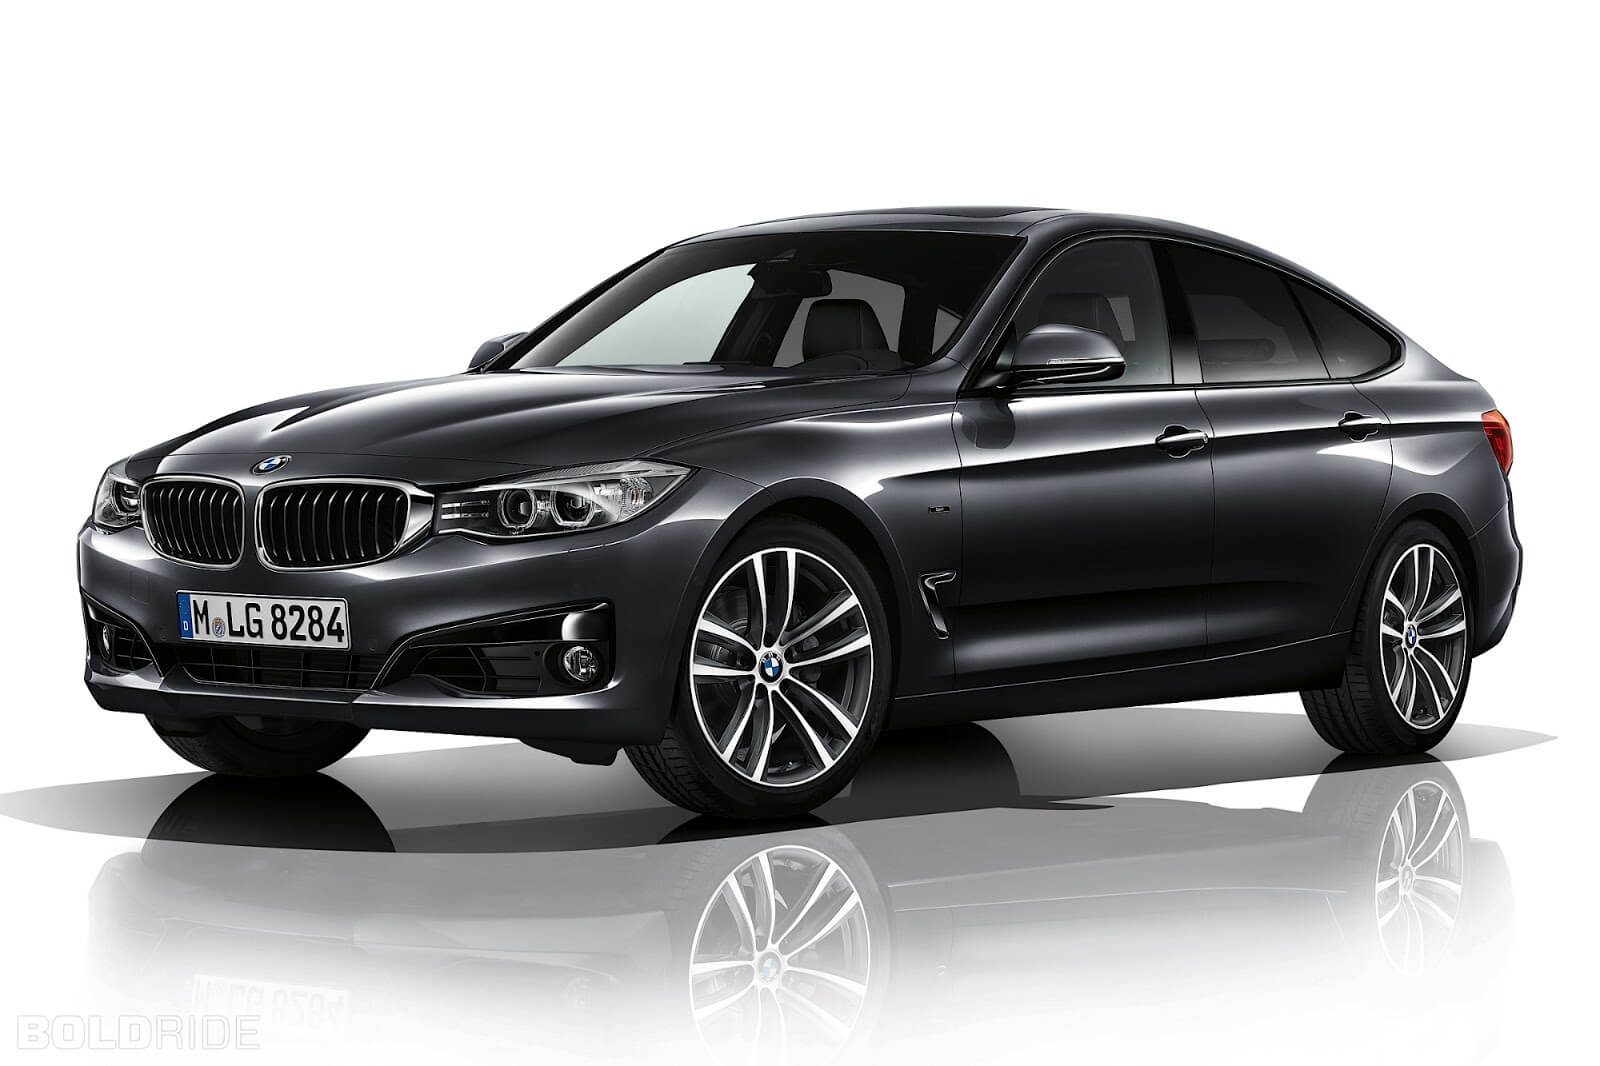 Bmw 3 Series Gt Price In India Images Specs Mileage Autoportal Com